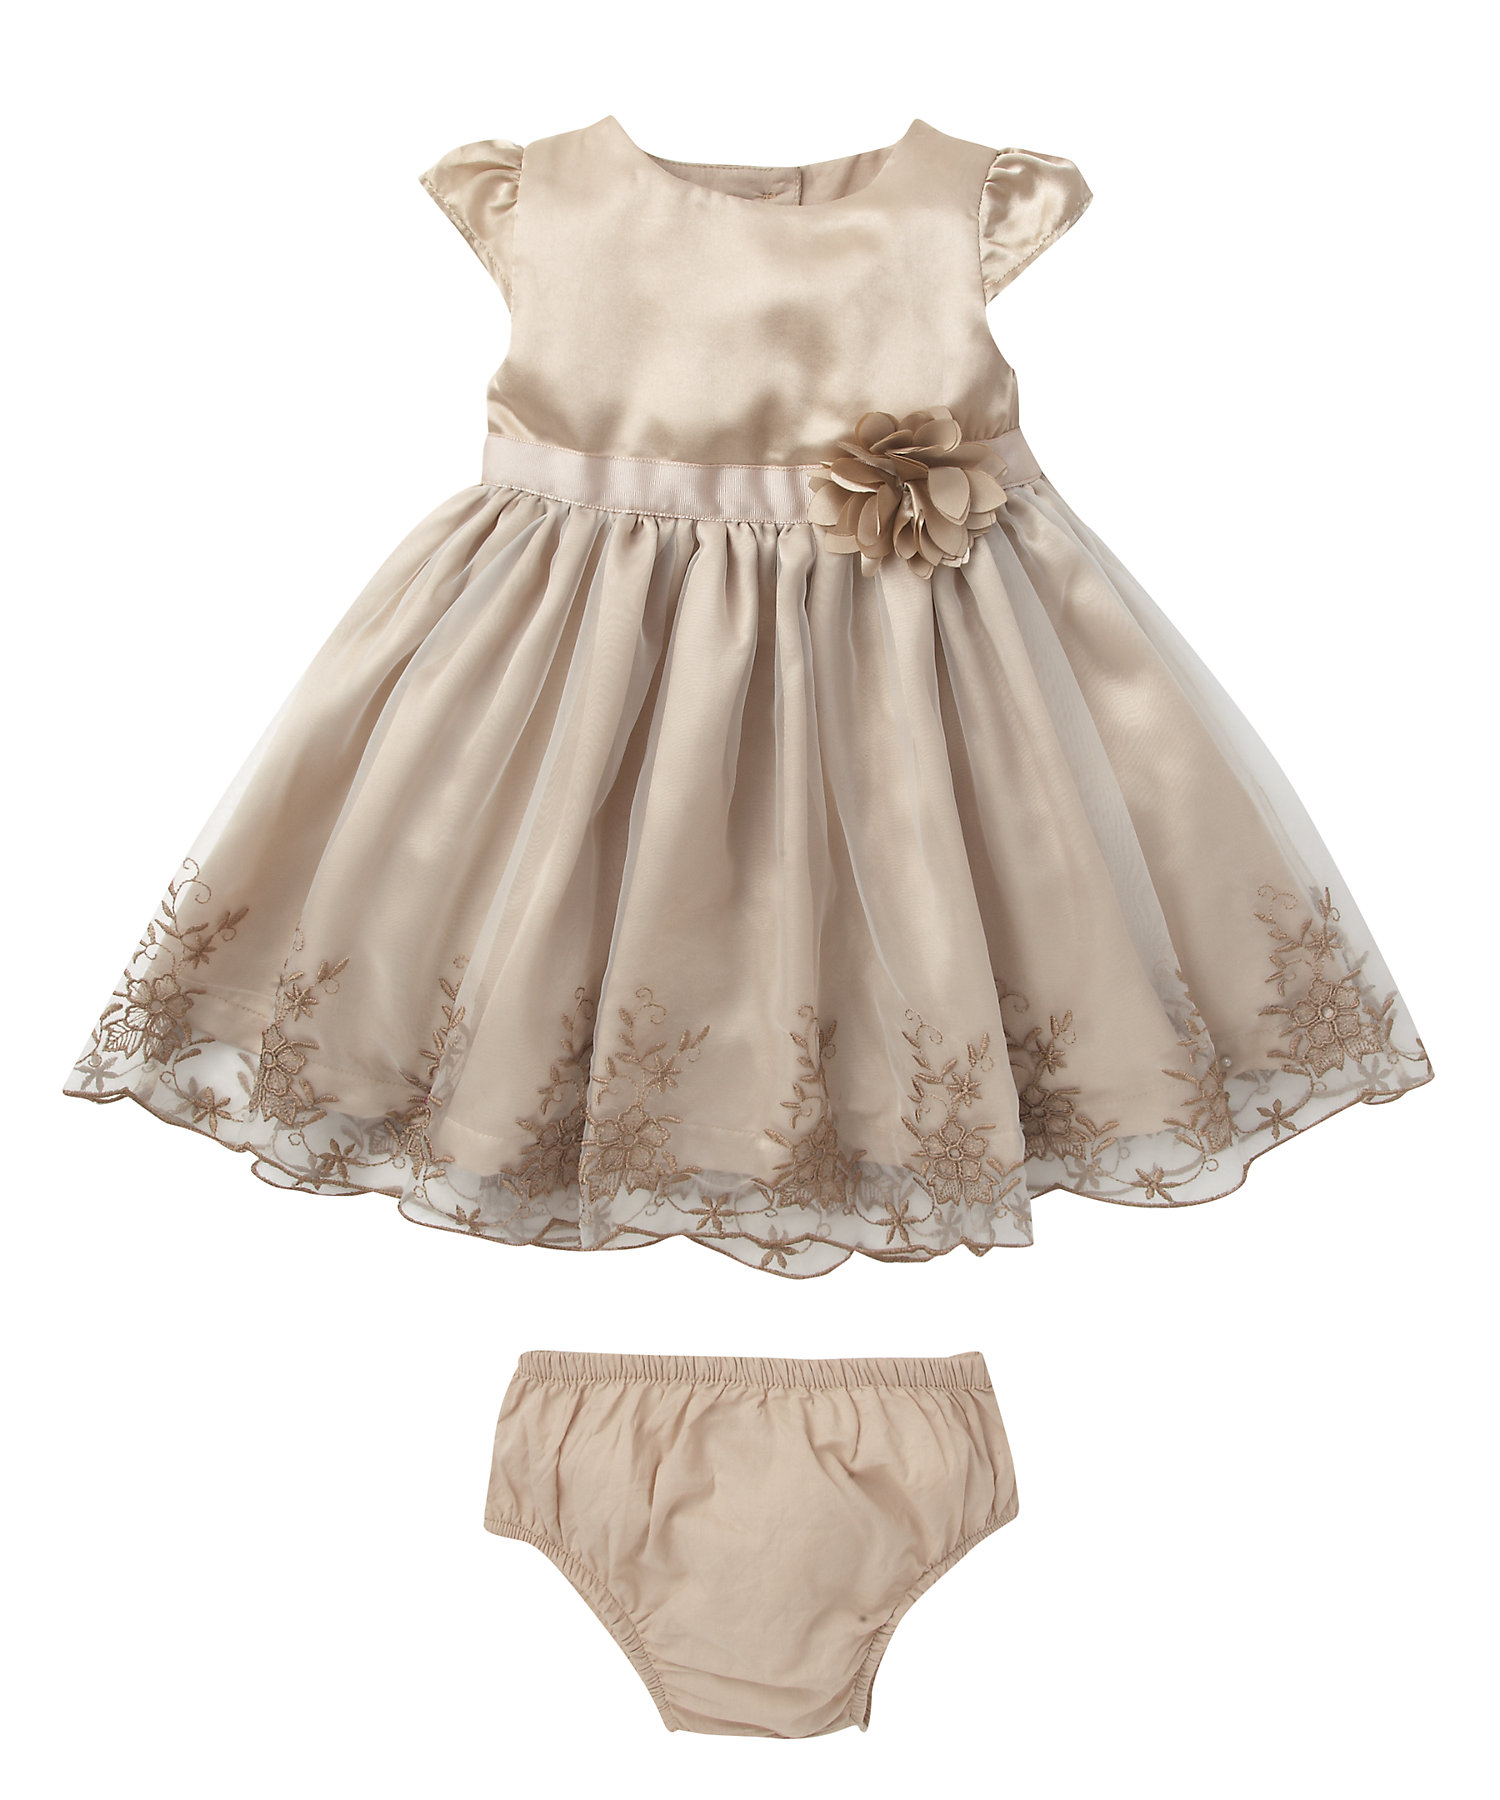 Mothercare | Girls Half Sleeves Party Dress 3D Flower Details - Brown